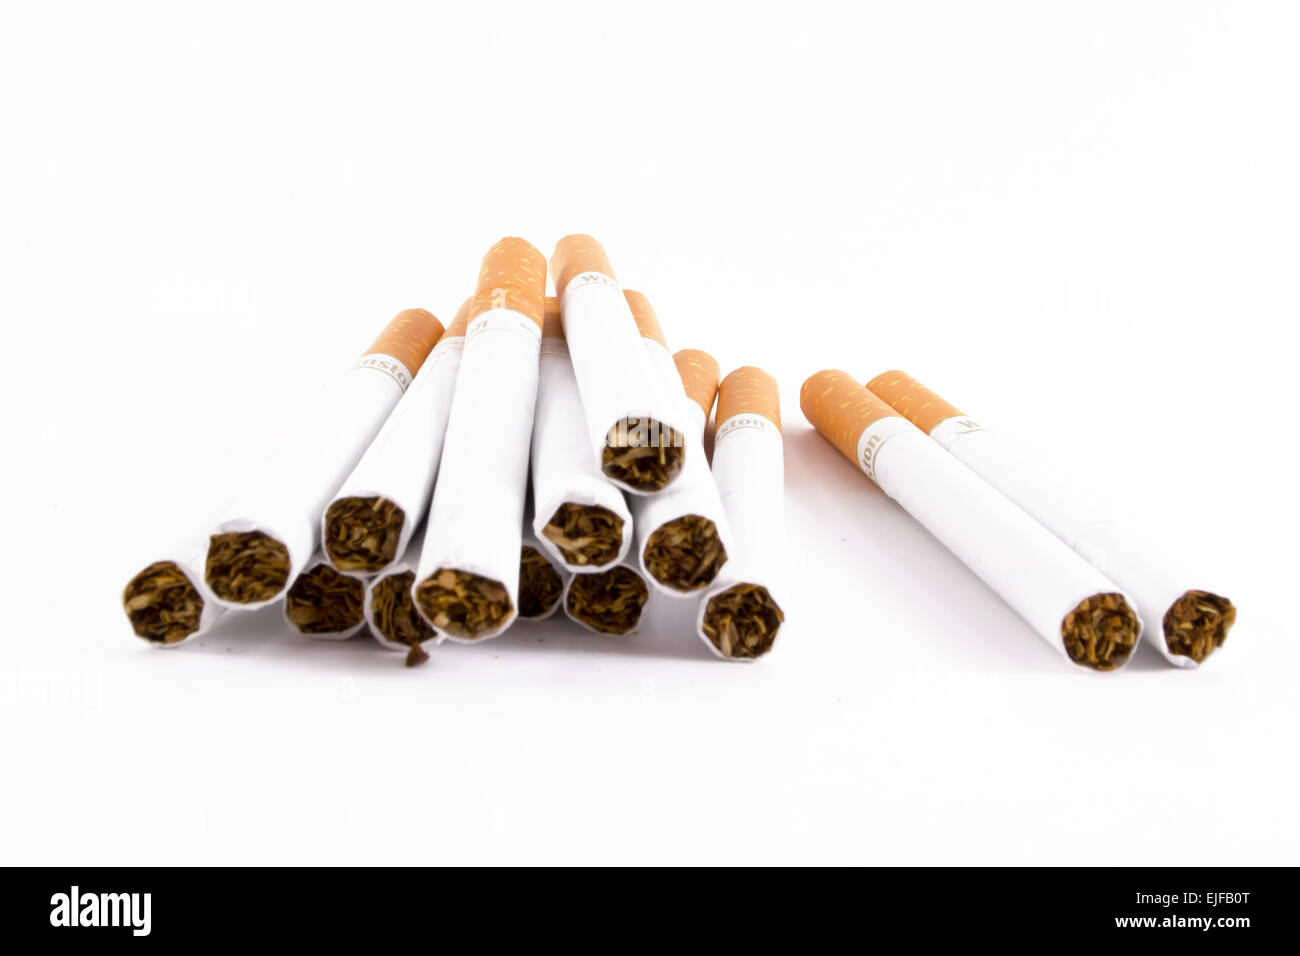 A pile of unlit cigs isolated on white in closeup - Stock Image